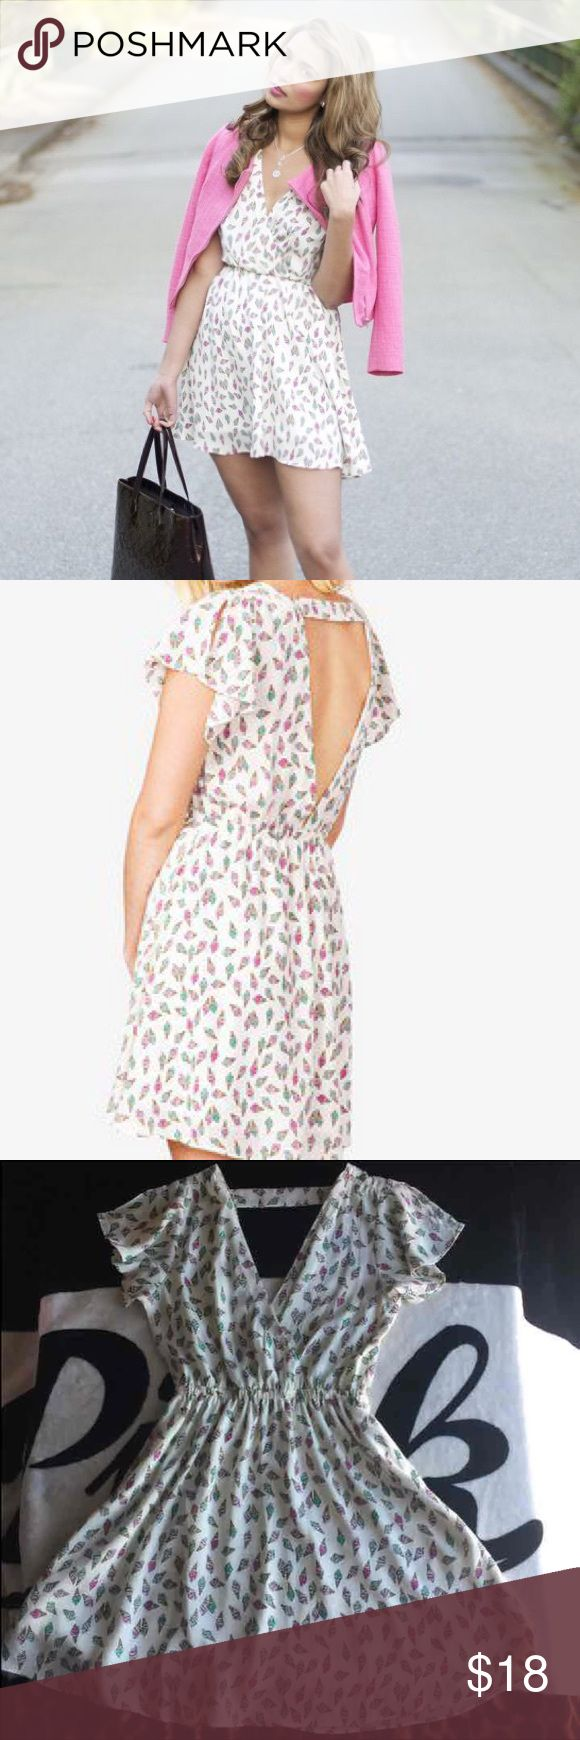 """Katy perry style ice cream party dress small Adorable cream colored dress with pink and mint green ice cream cones from forever 21. Cut out keyhole back, deep v neck. Split flutter sleeves. Elastic waistband. Skirt is lined. Size is small, waist is 24"""" unstretched, stretches up to 30"""". Could fit a larger bust. About 33"""" long from shoulder to hem. Only worn once for a couple hours. Still looks brand new. Forever 21 Dresses Mini"""